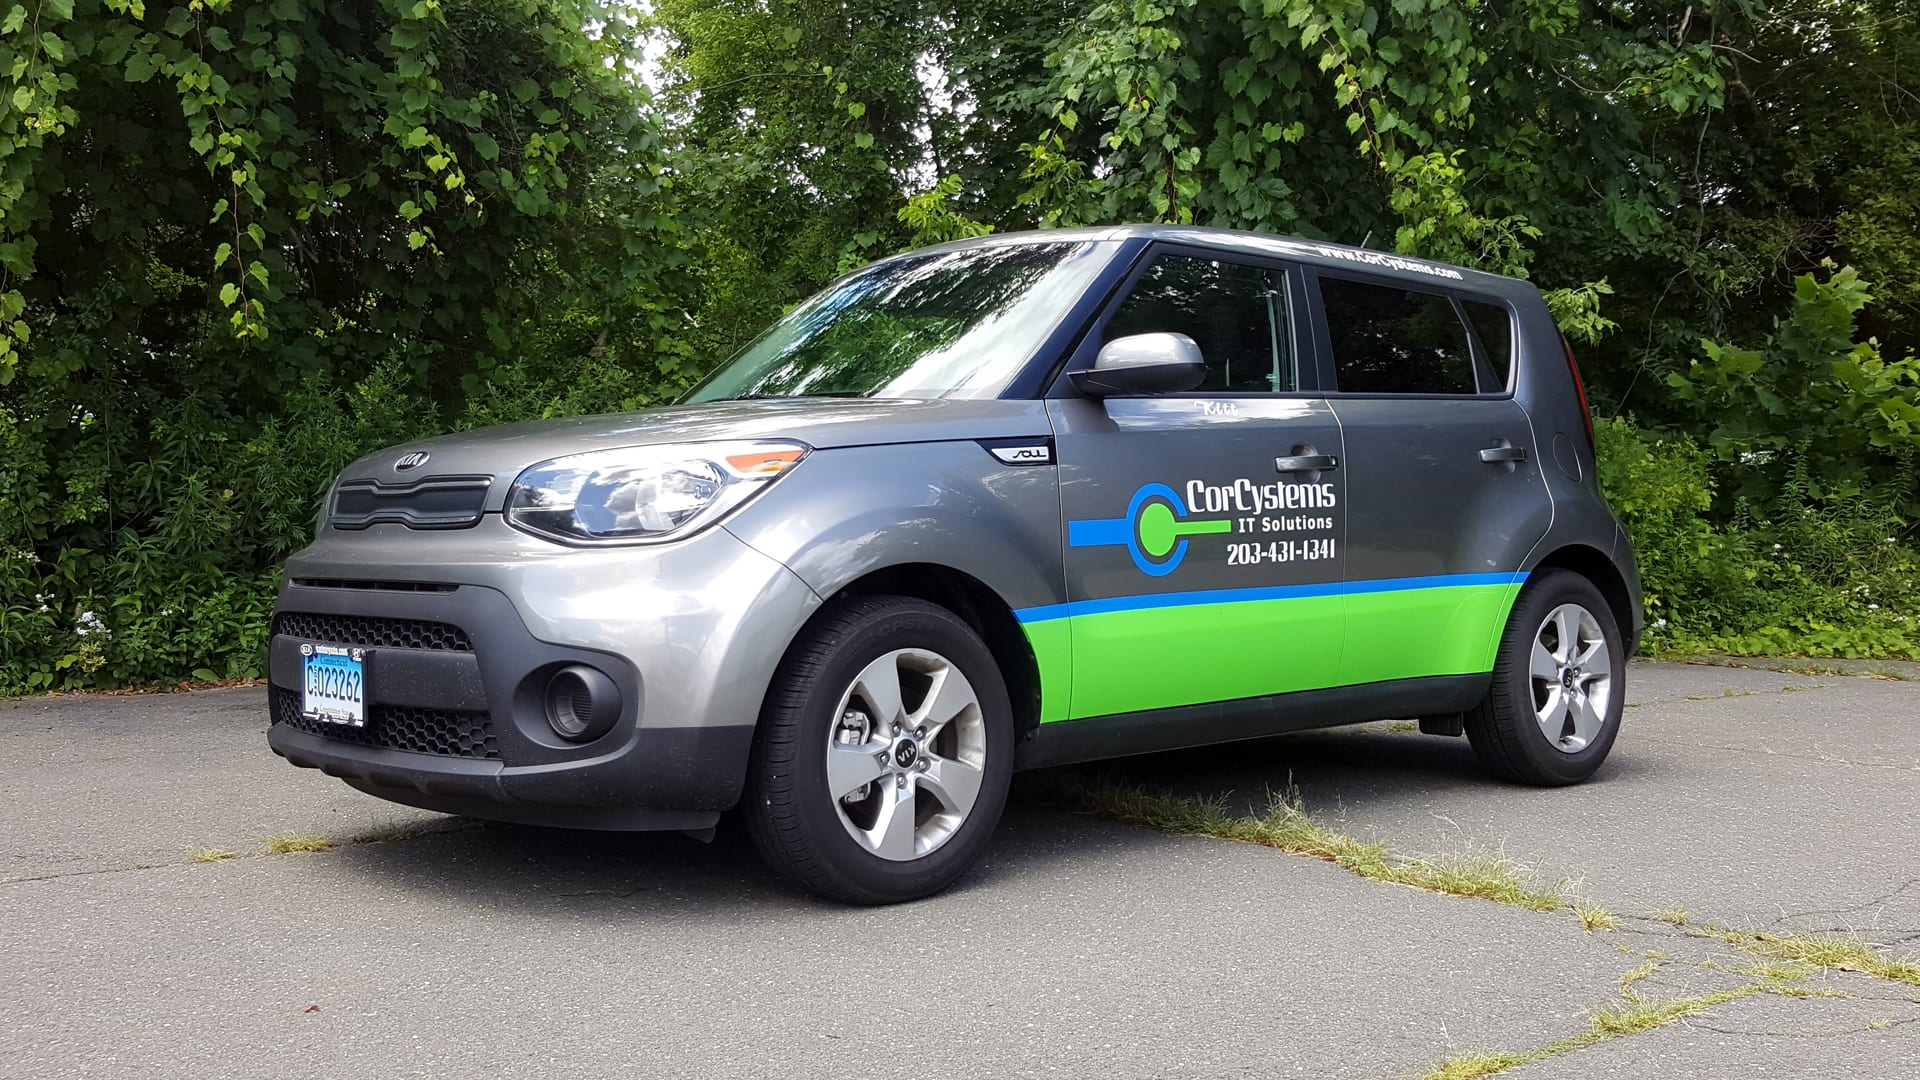 CorCystems Vehicle wrap - Vinyl Lettering